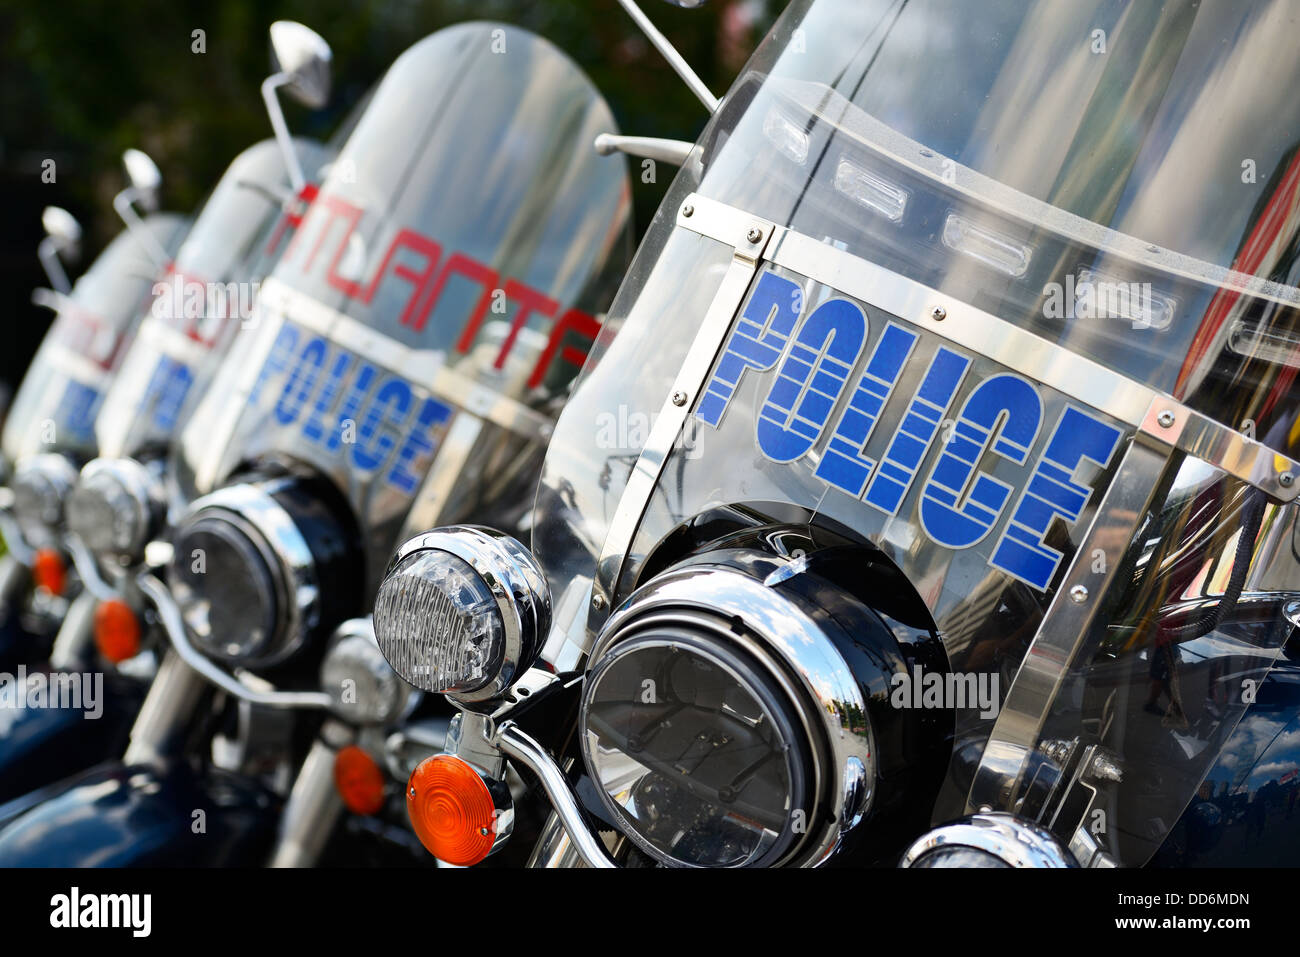 atlanta police motorcycles - Stock Image